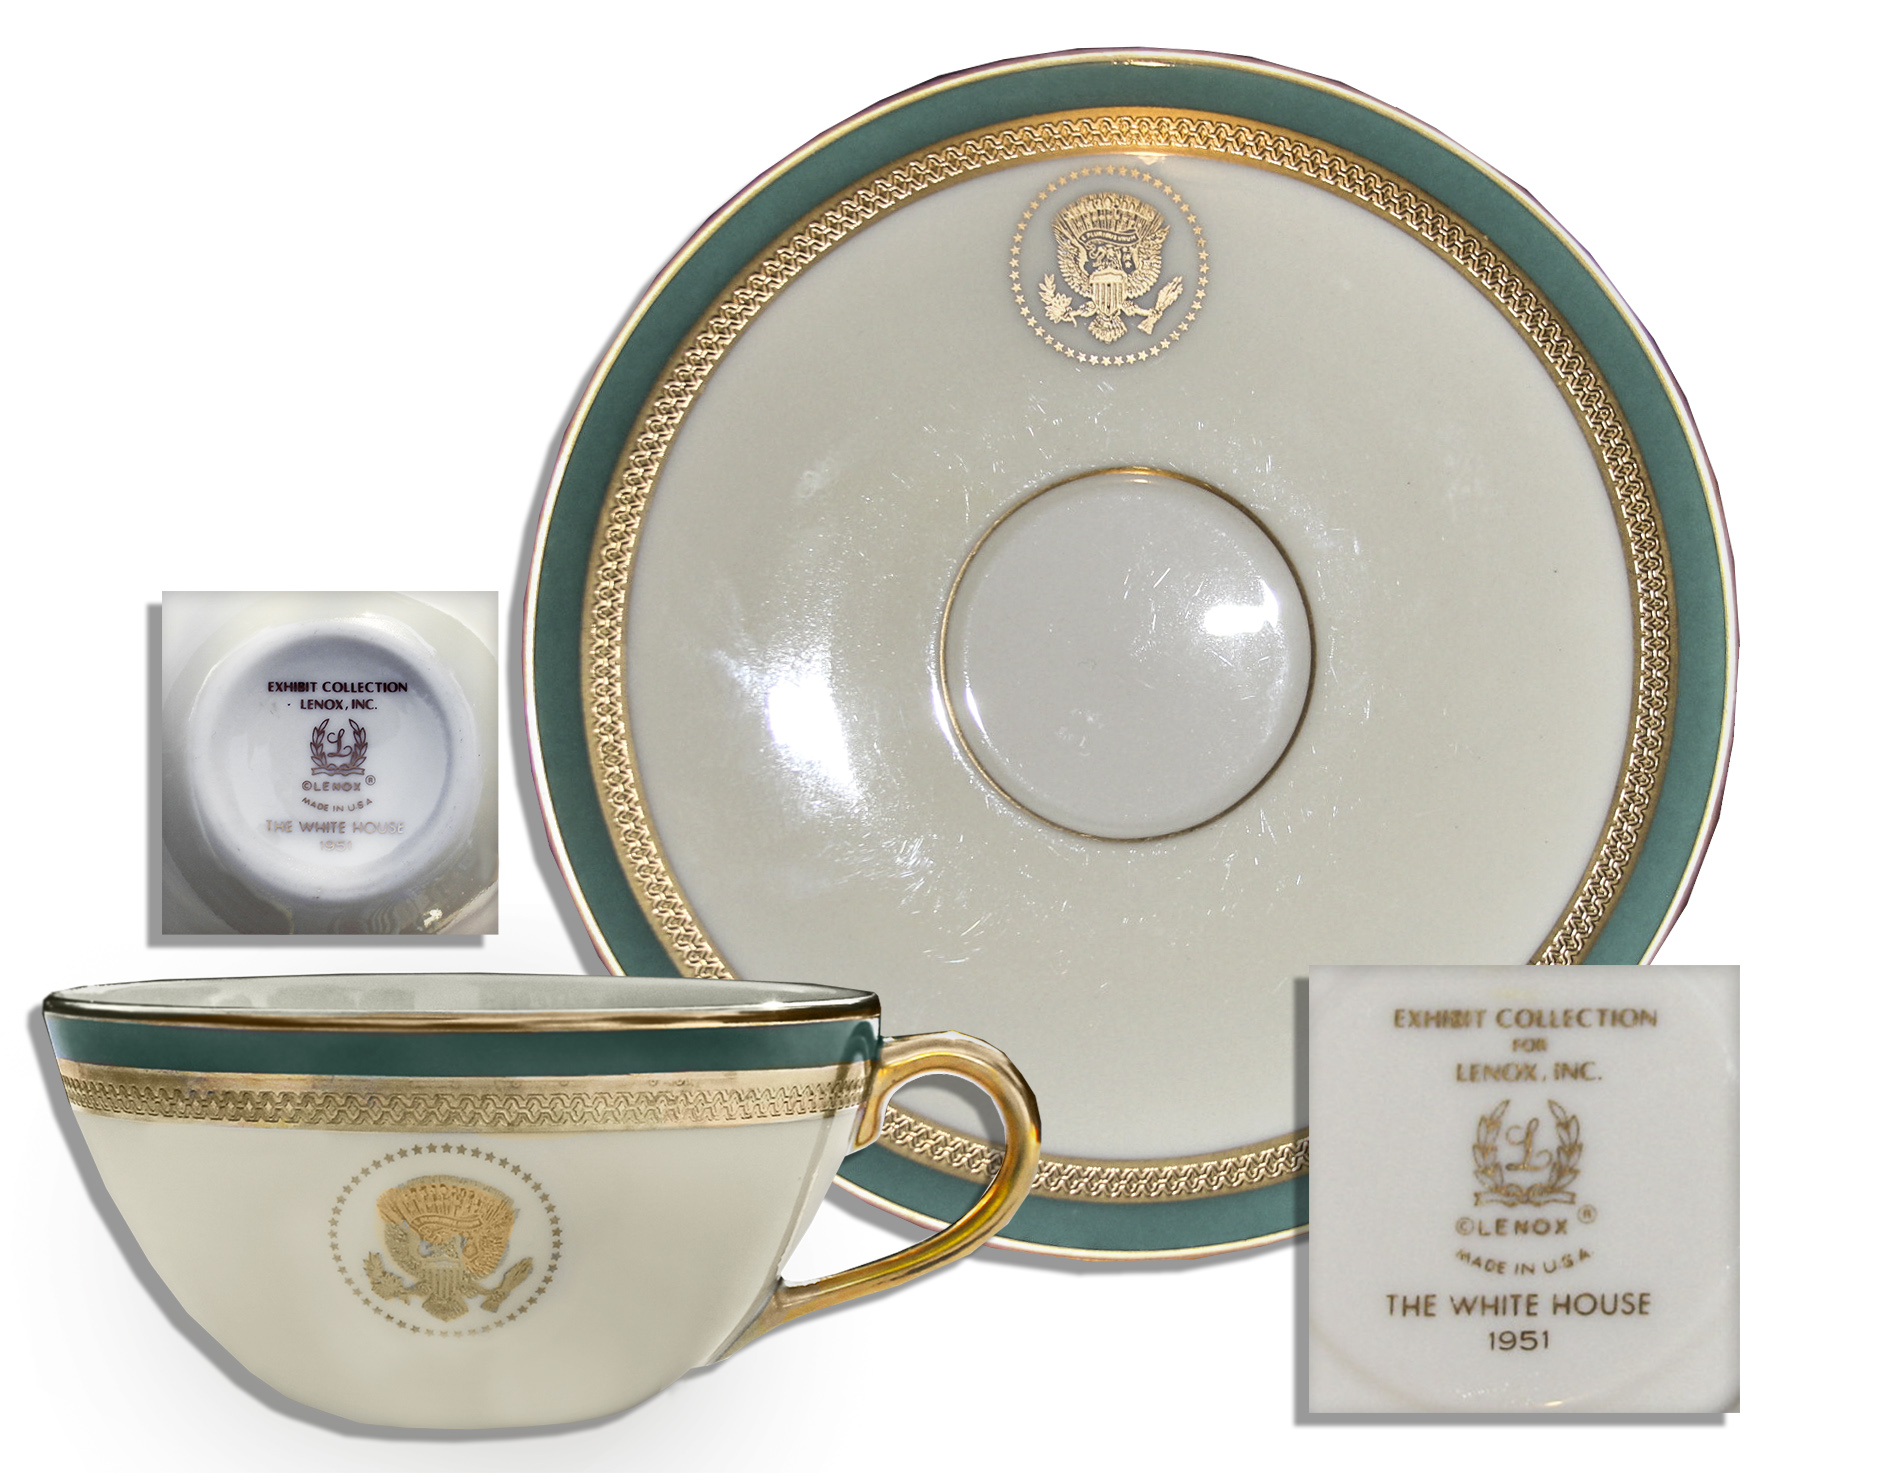 Harry Truman Memorabilia Harry S. Truman White House Exhibit China -- Cup & Saucer by Lenox -- Fine